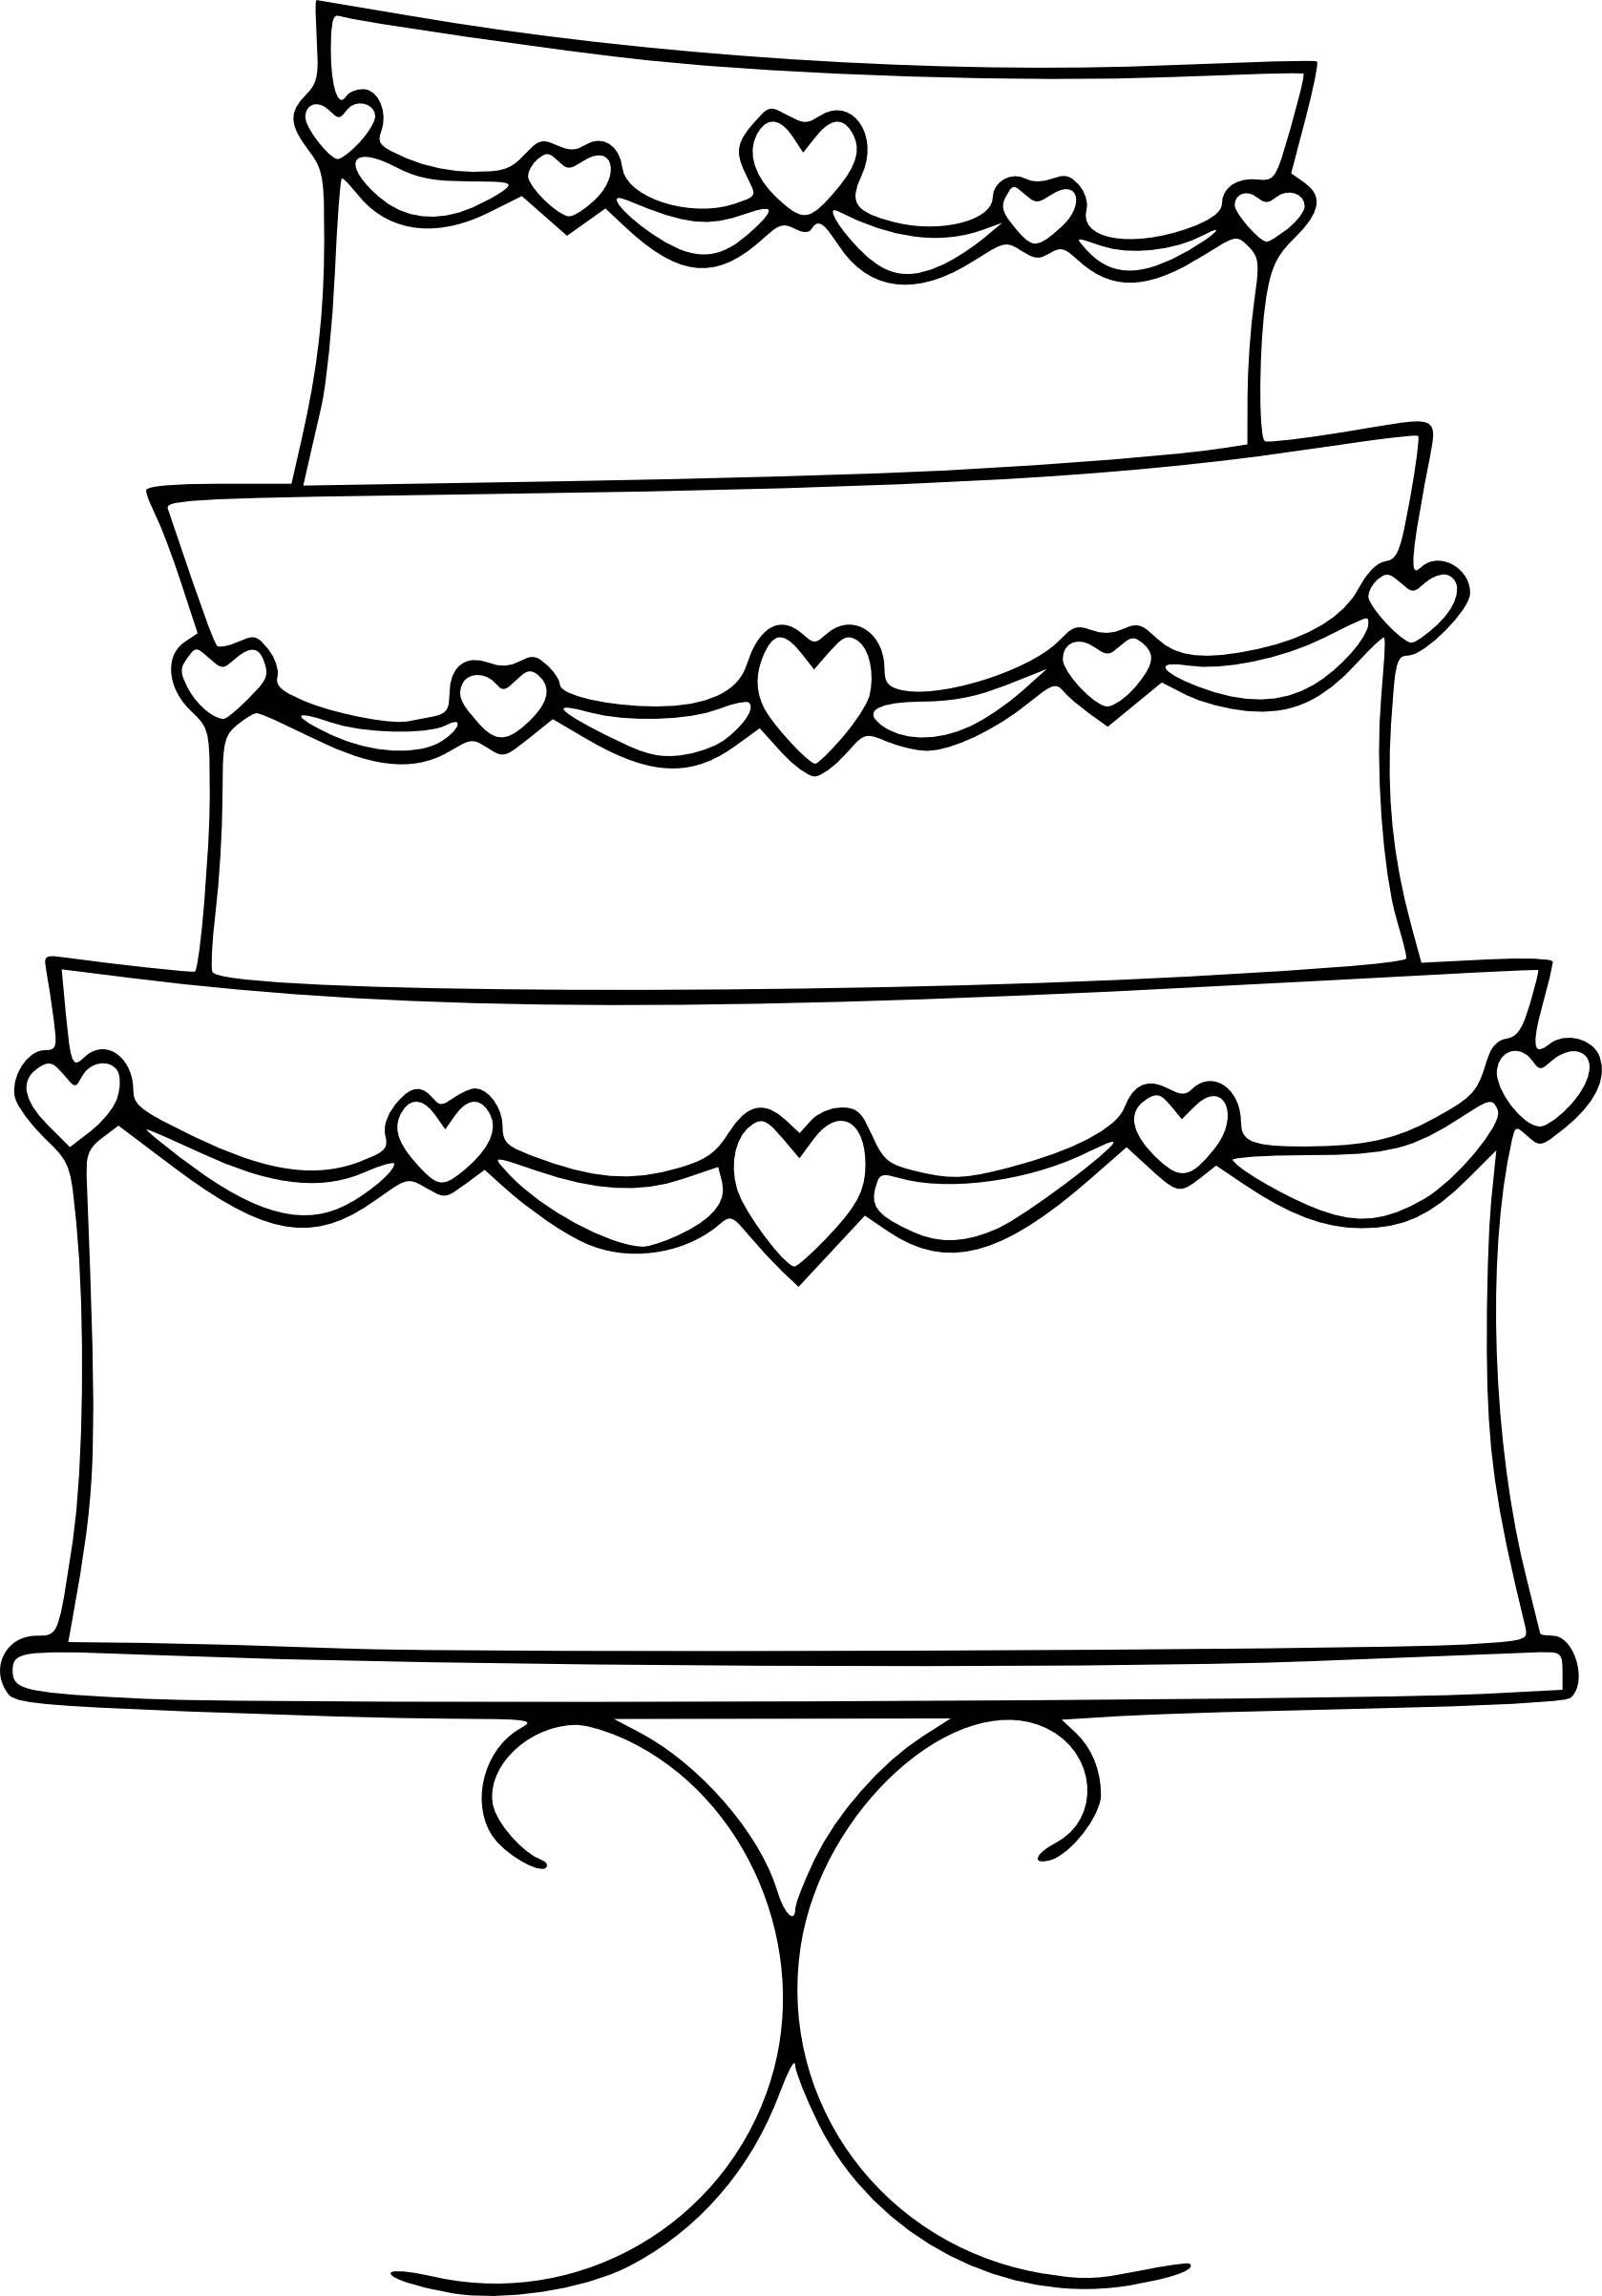 Wedding Cake Color Pages Free Printable 18 Of 20 Printable Icio